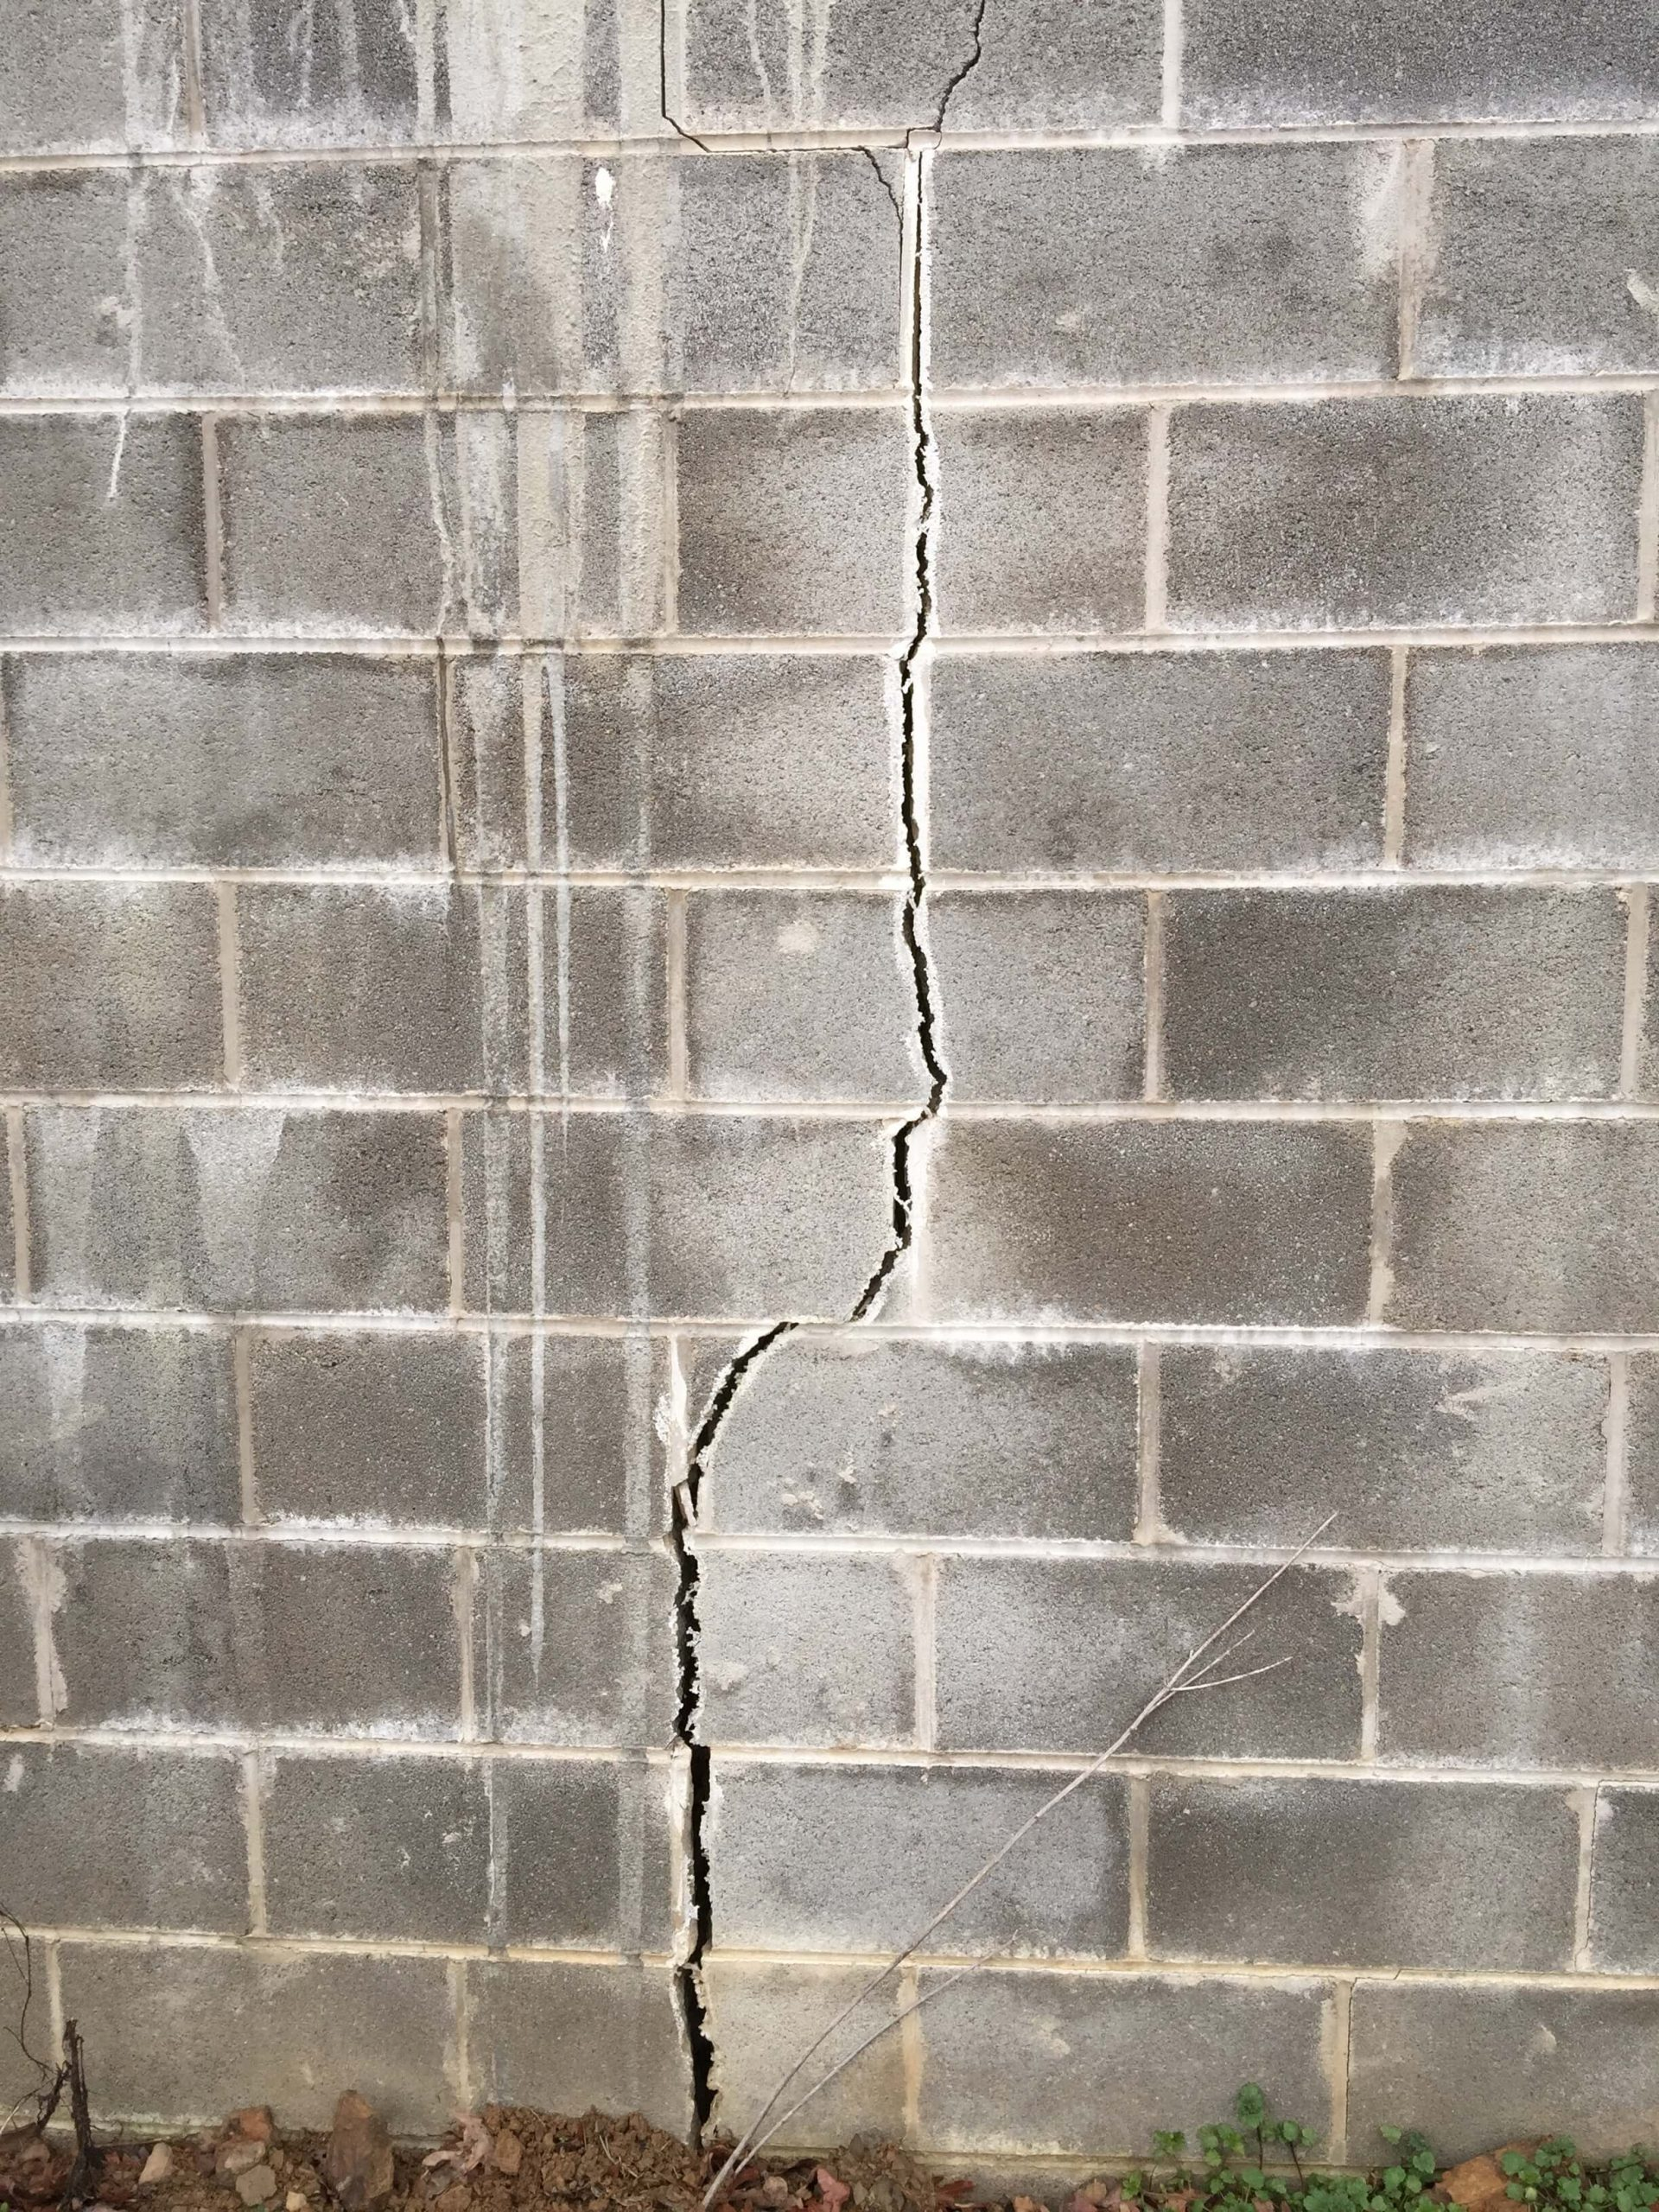 Cracks in Basement Block